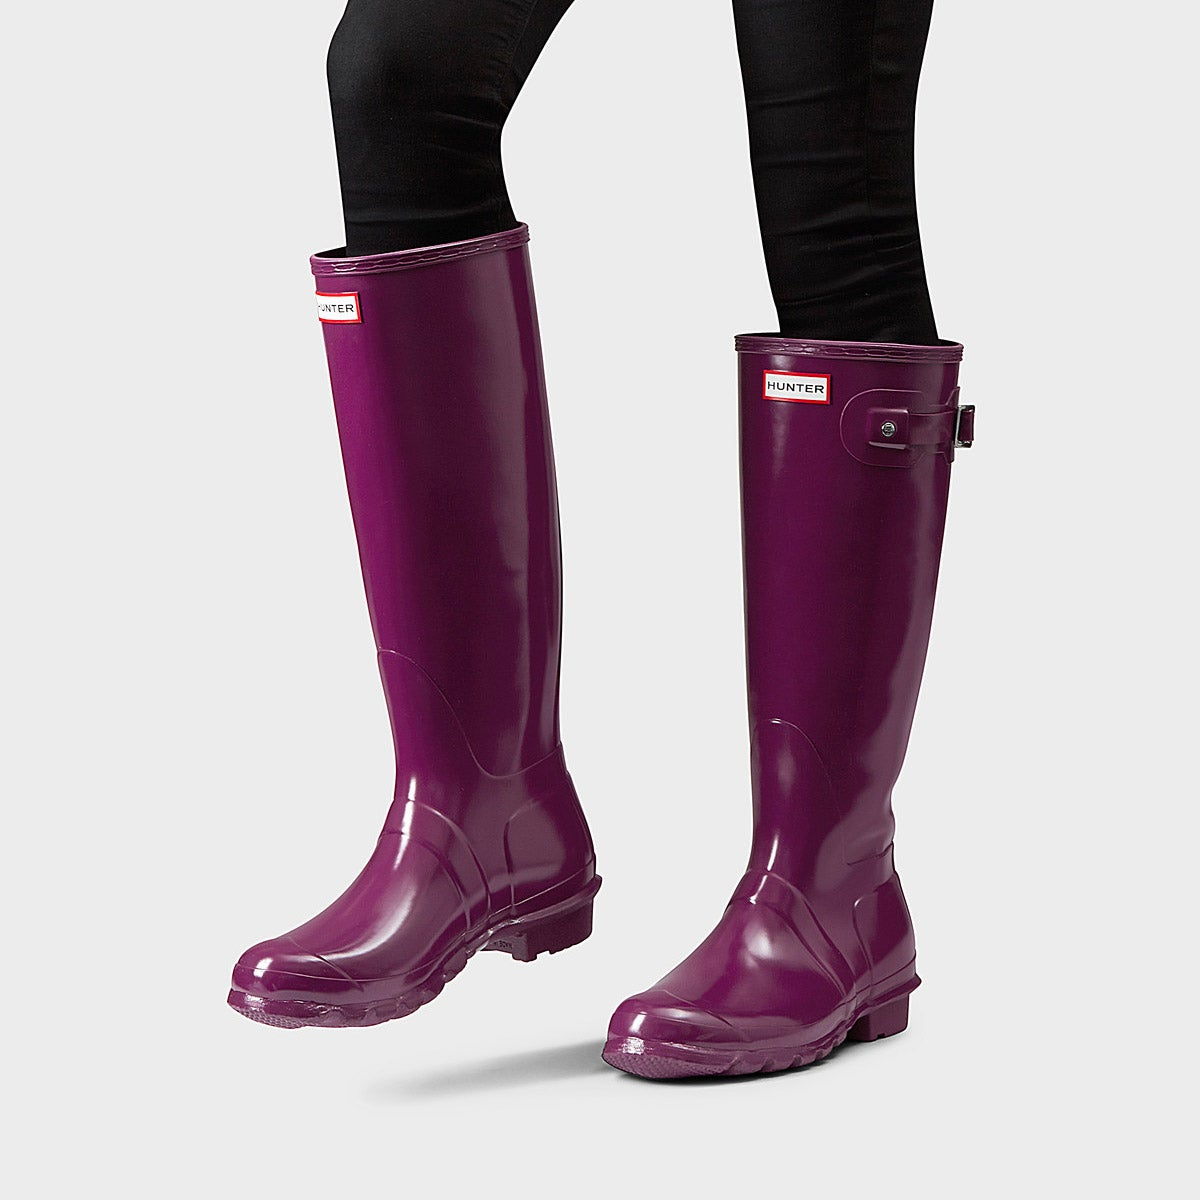 Lds Original Tall Gloss purple rain boot